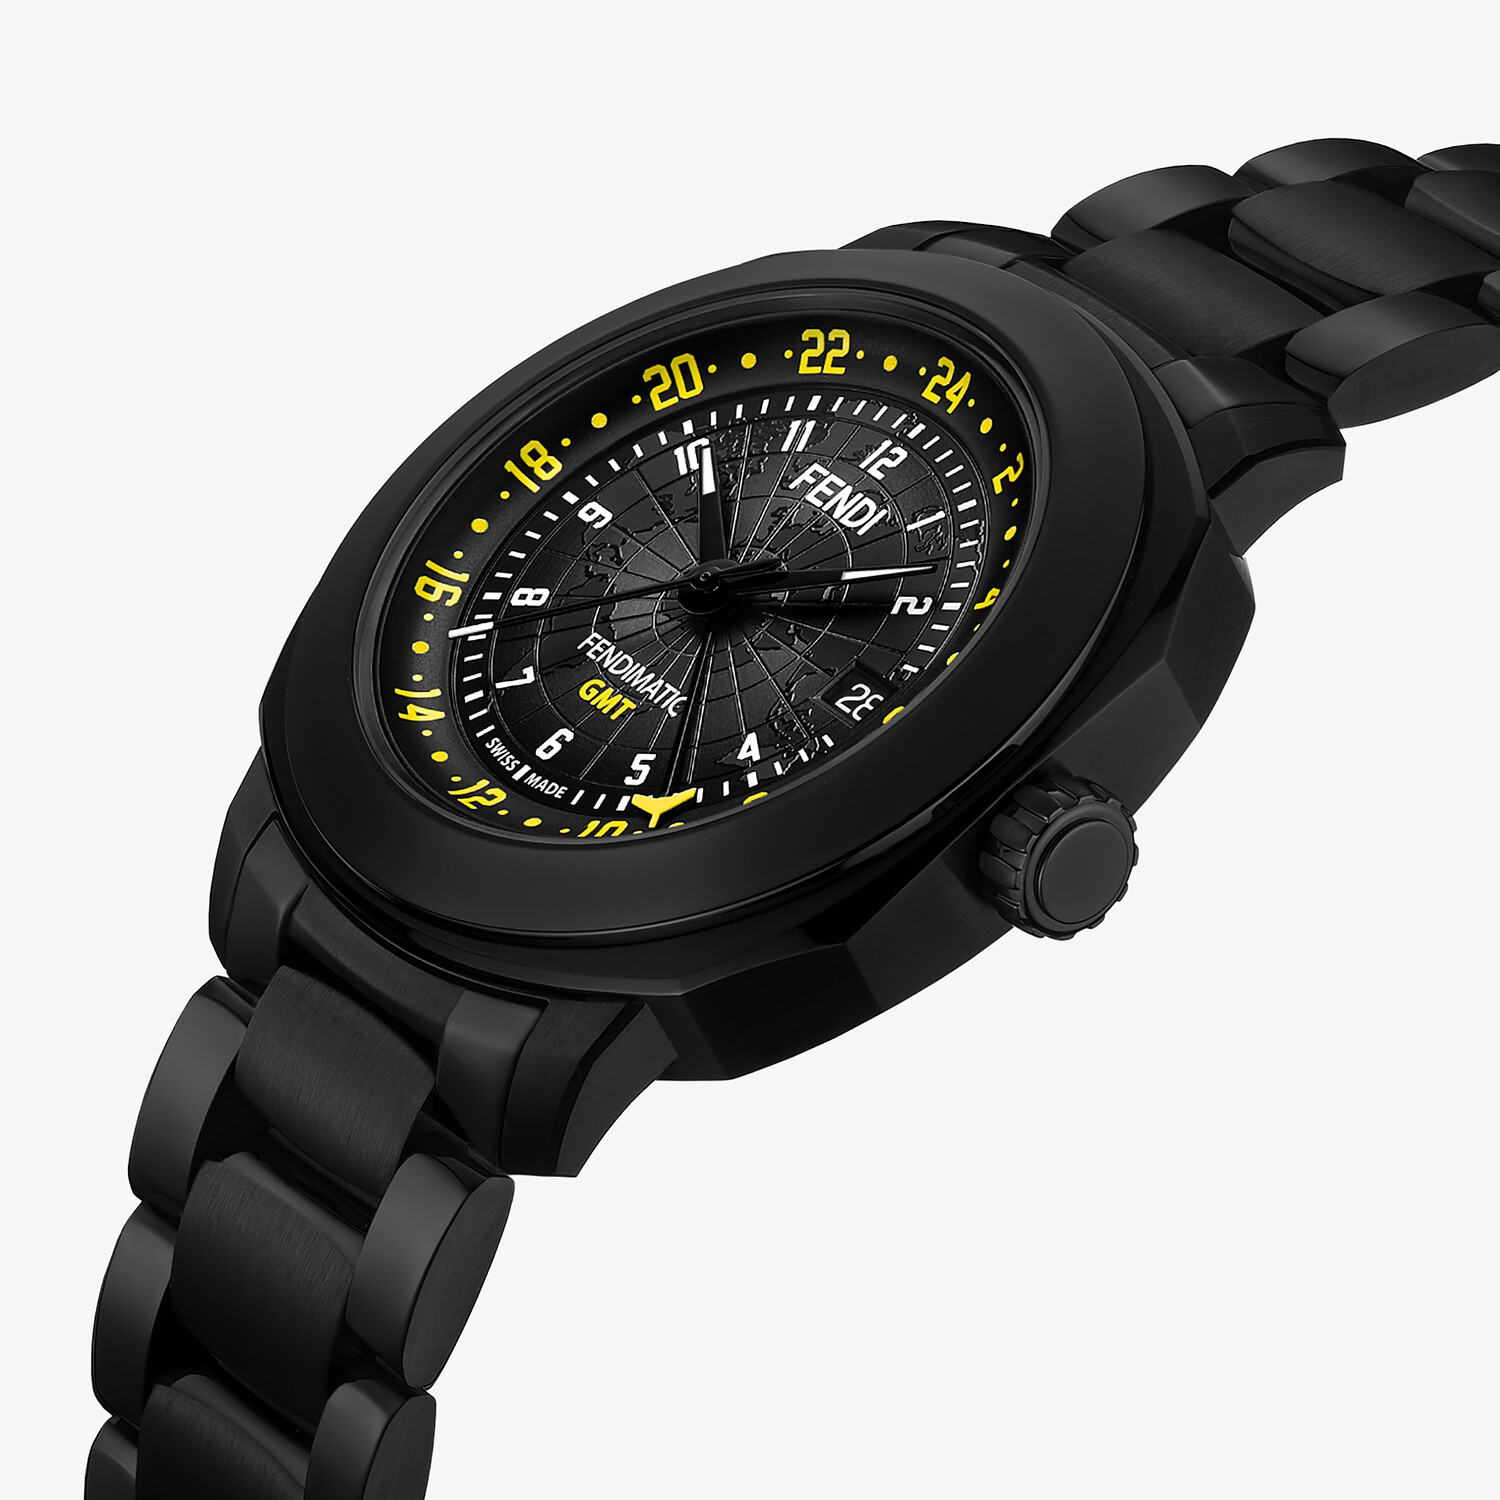 FENDI SELLERIA - 42mm (1.7inch) – Automatic watch with interchangeable bracelet - view 3 detail